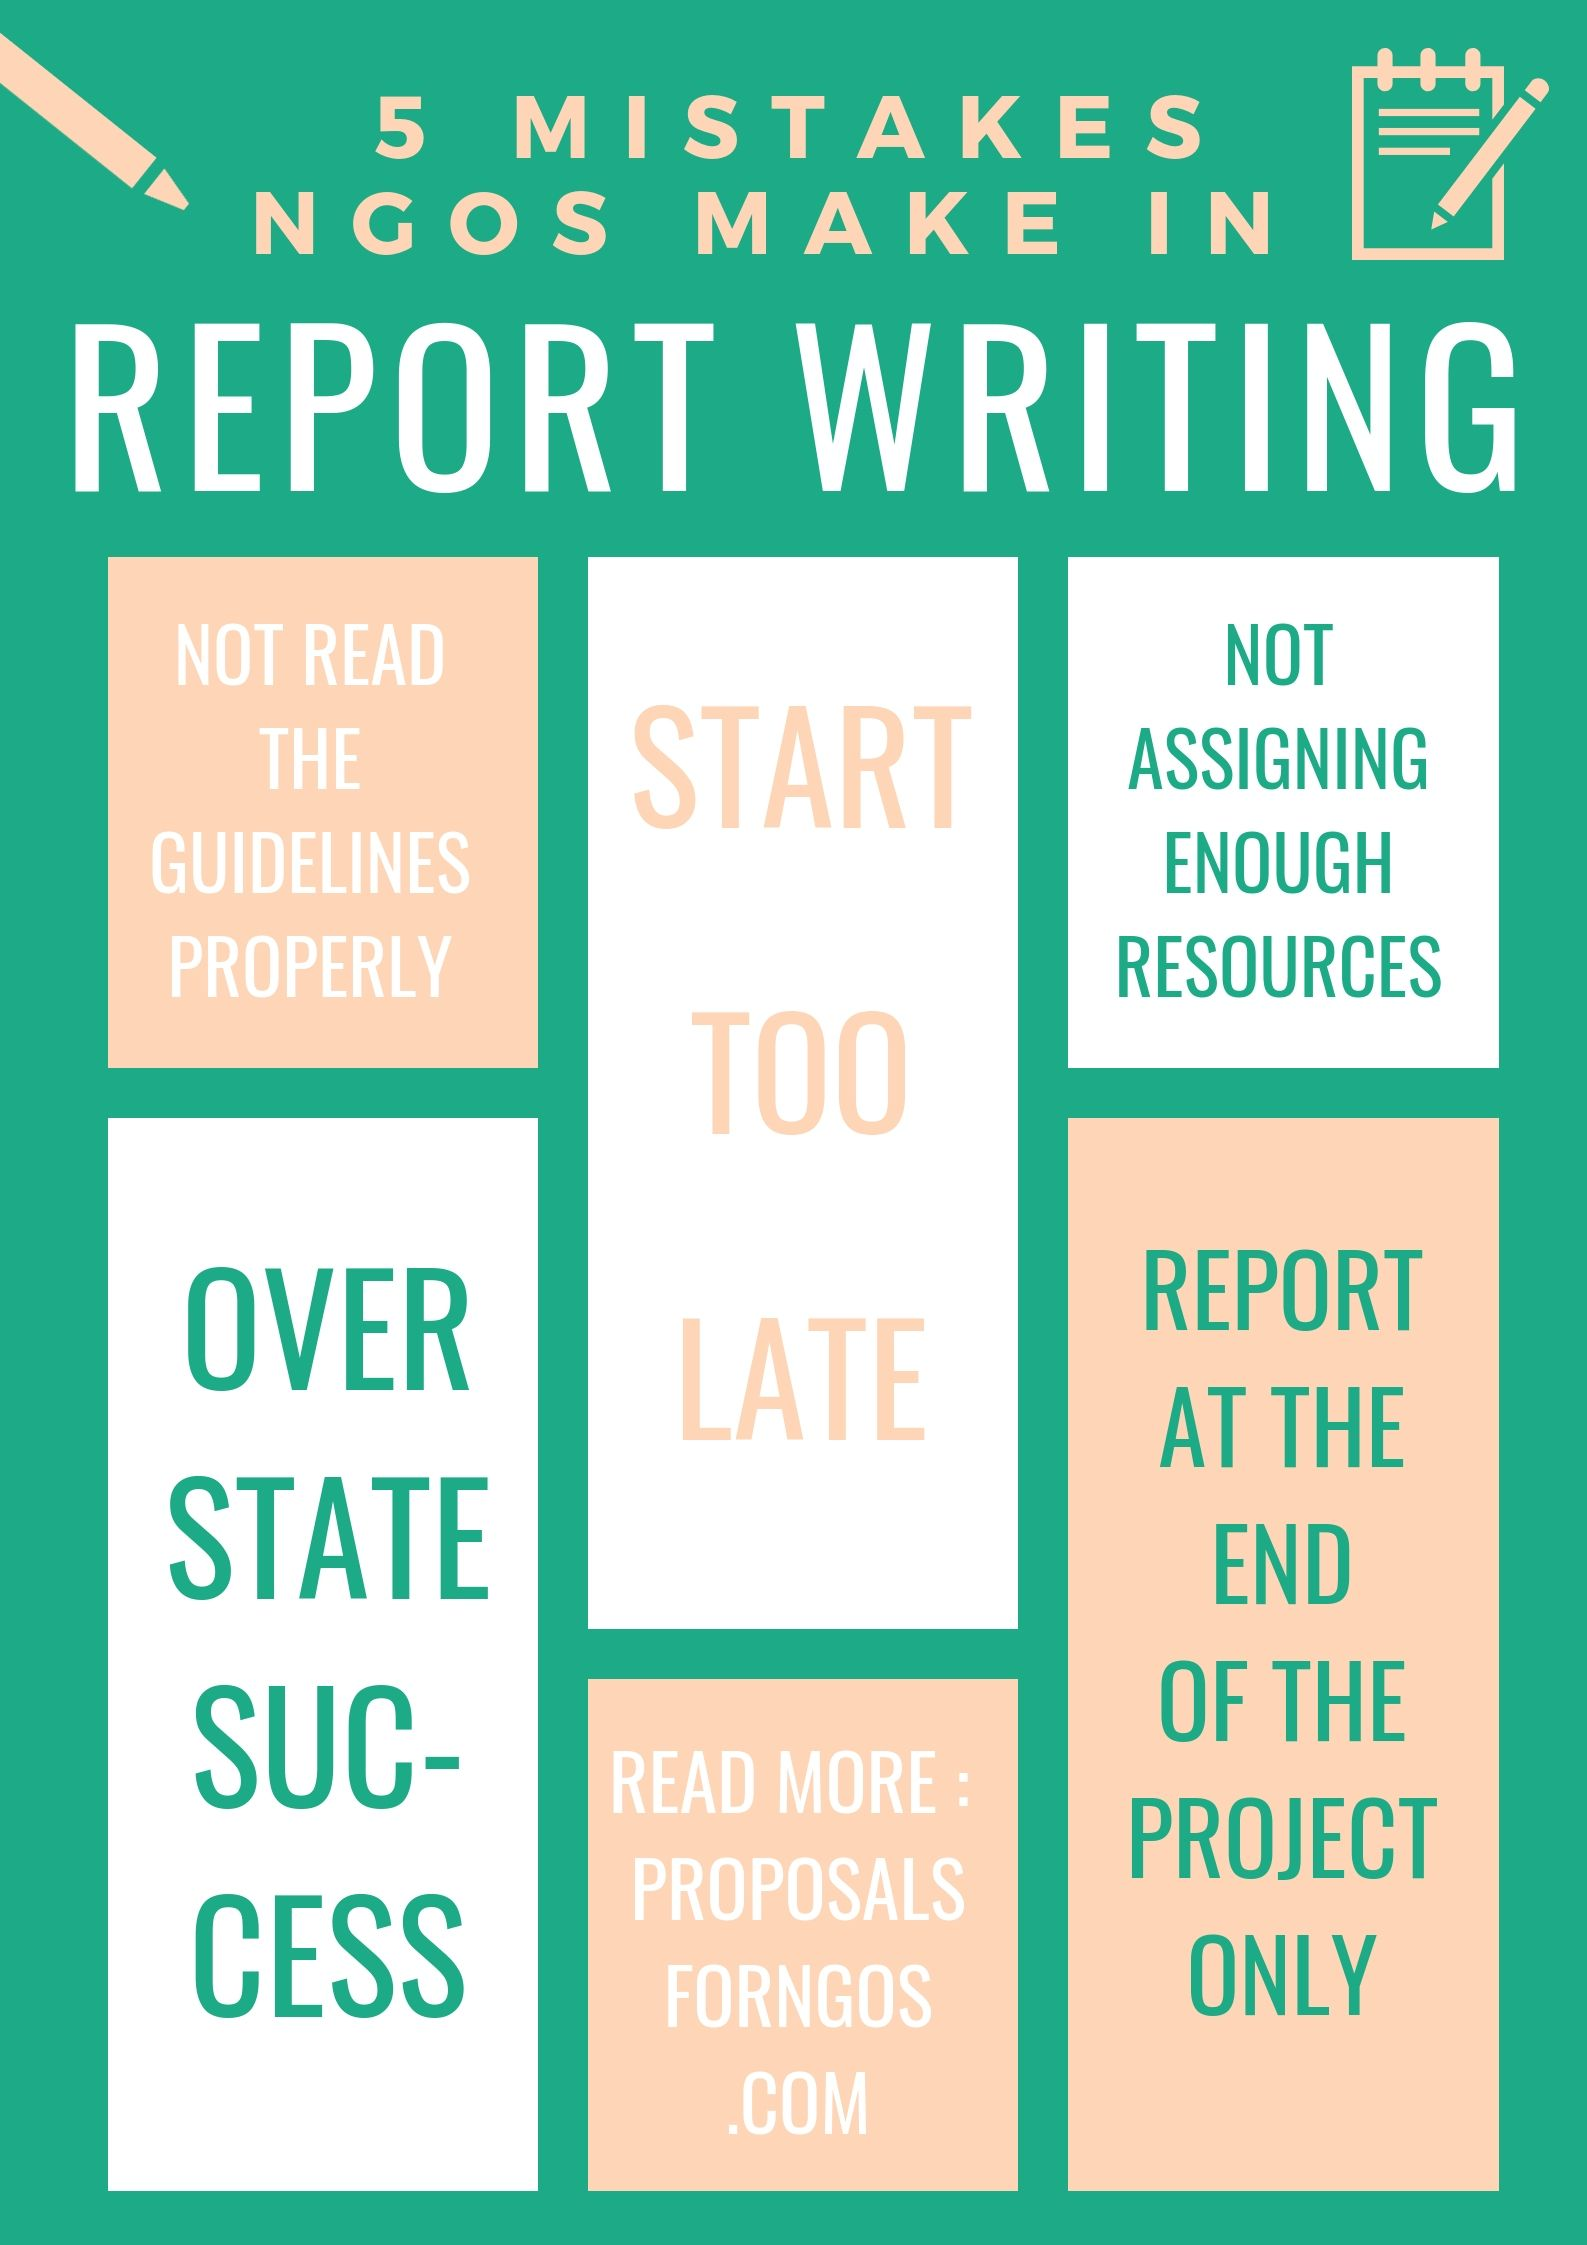 5 Mistakes Ngos Make When Writing A Report Proposal For Ngos Proposal Writing Unique Fundraisers Proposal